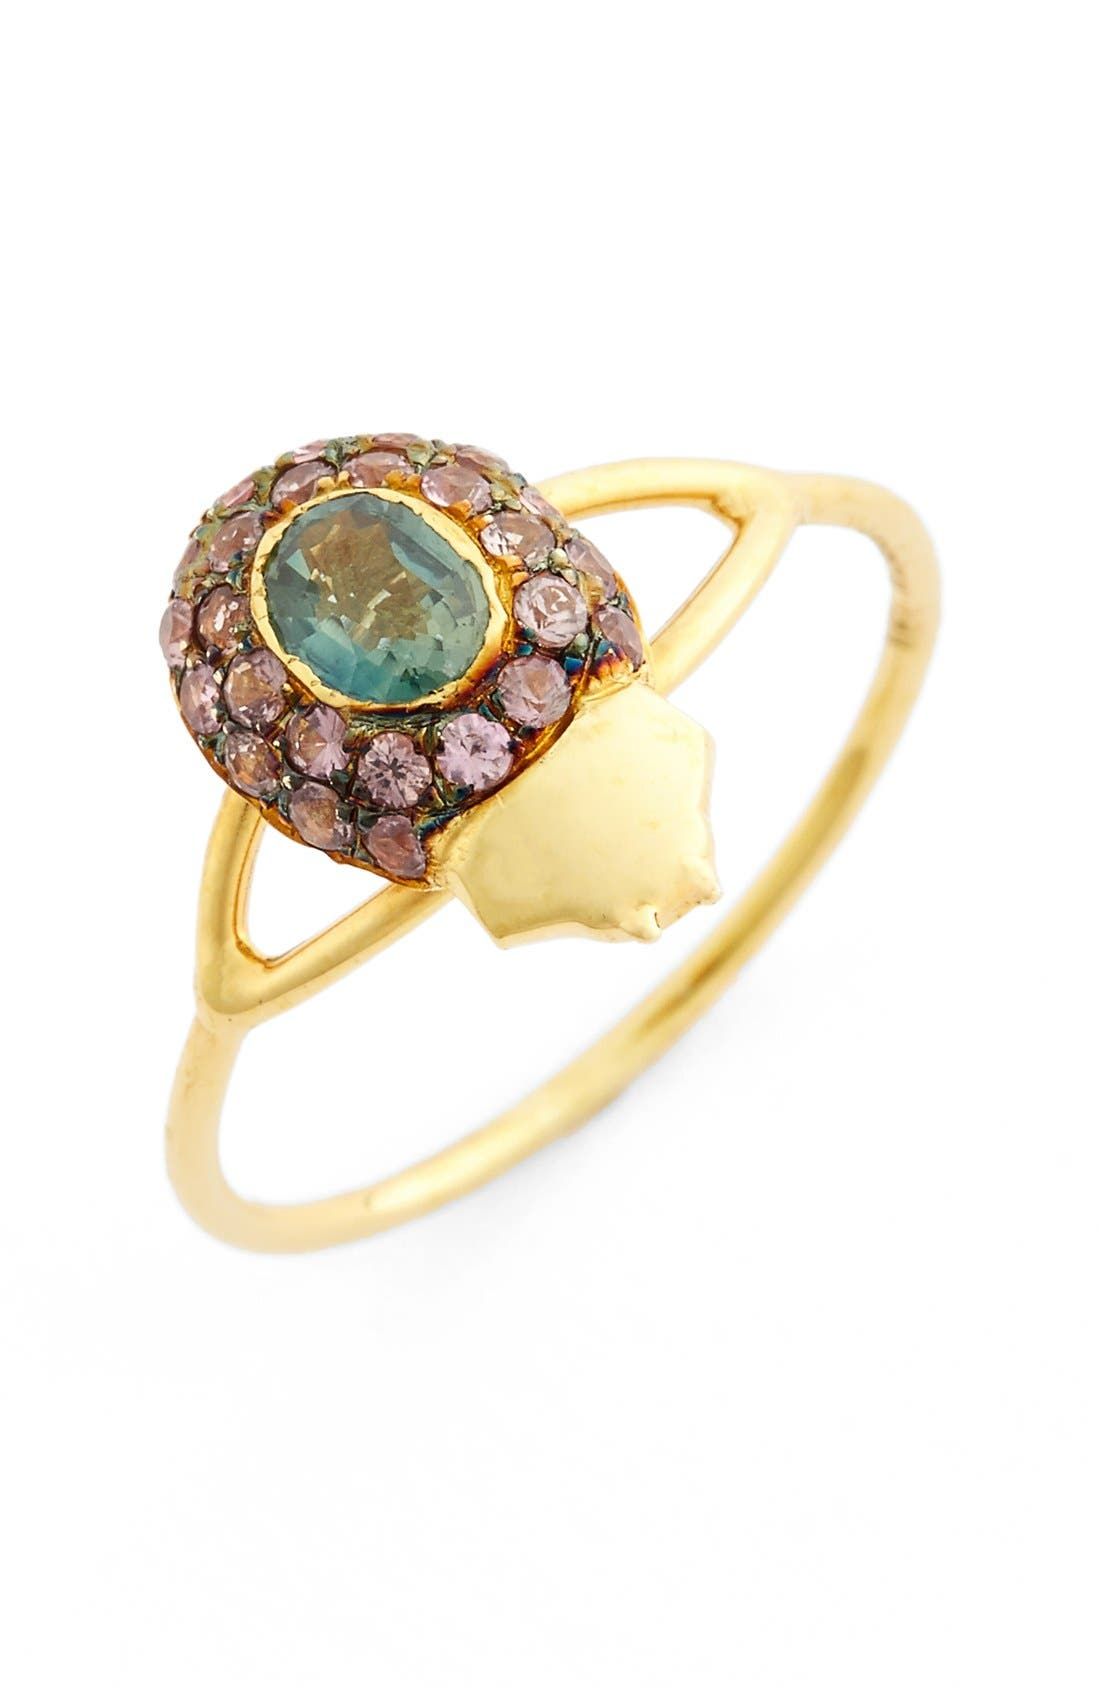 'Maat' Sapphire Ring,                             Main thumbnail 1, color,                             Yellow Gold/ Brown Sapphire